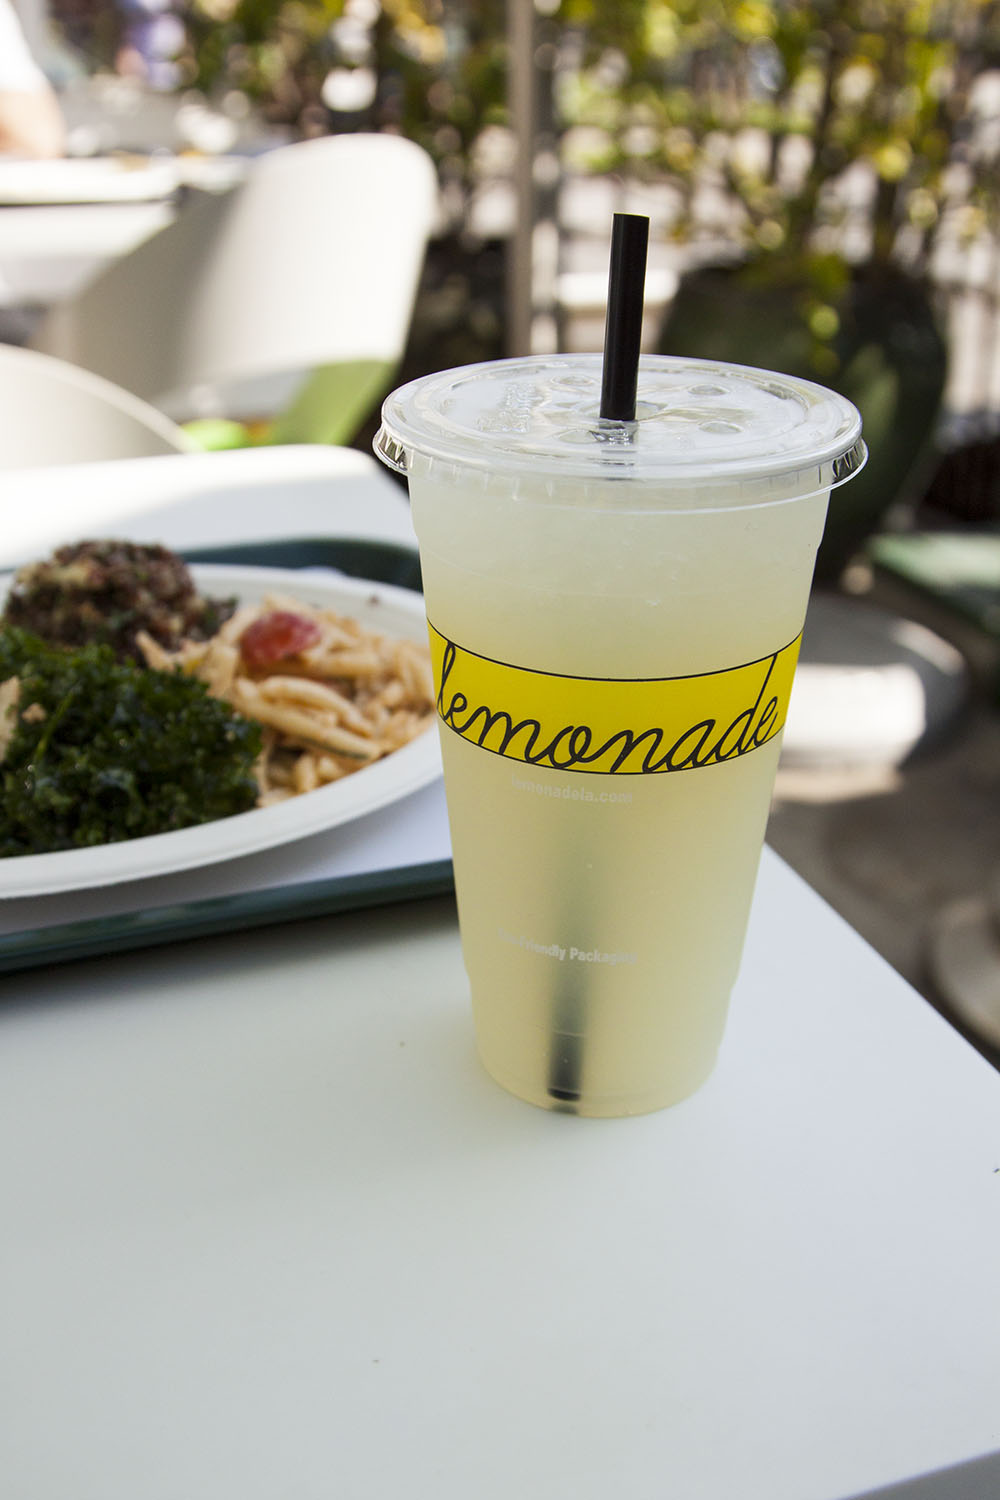 Lemonade from Lemonade